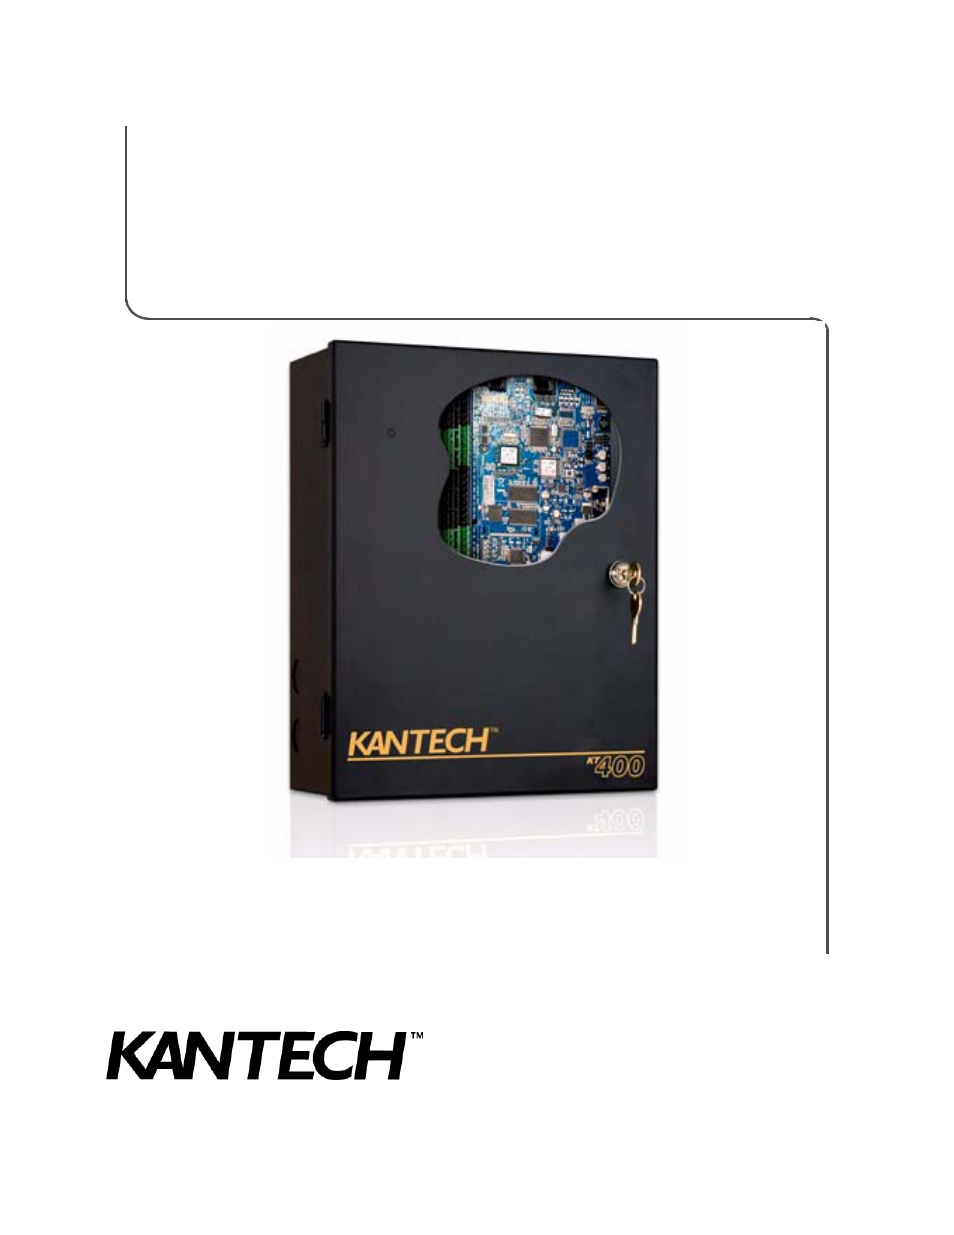 kantech kt 400 page1 kantech kt 400 user manual 44 pages kantech wiring diagram at bakdesigns.co